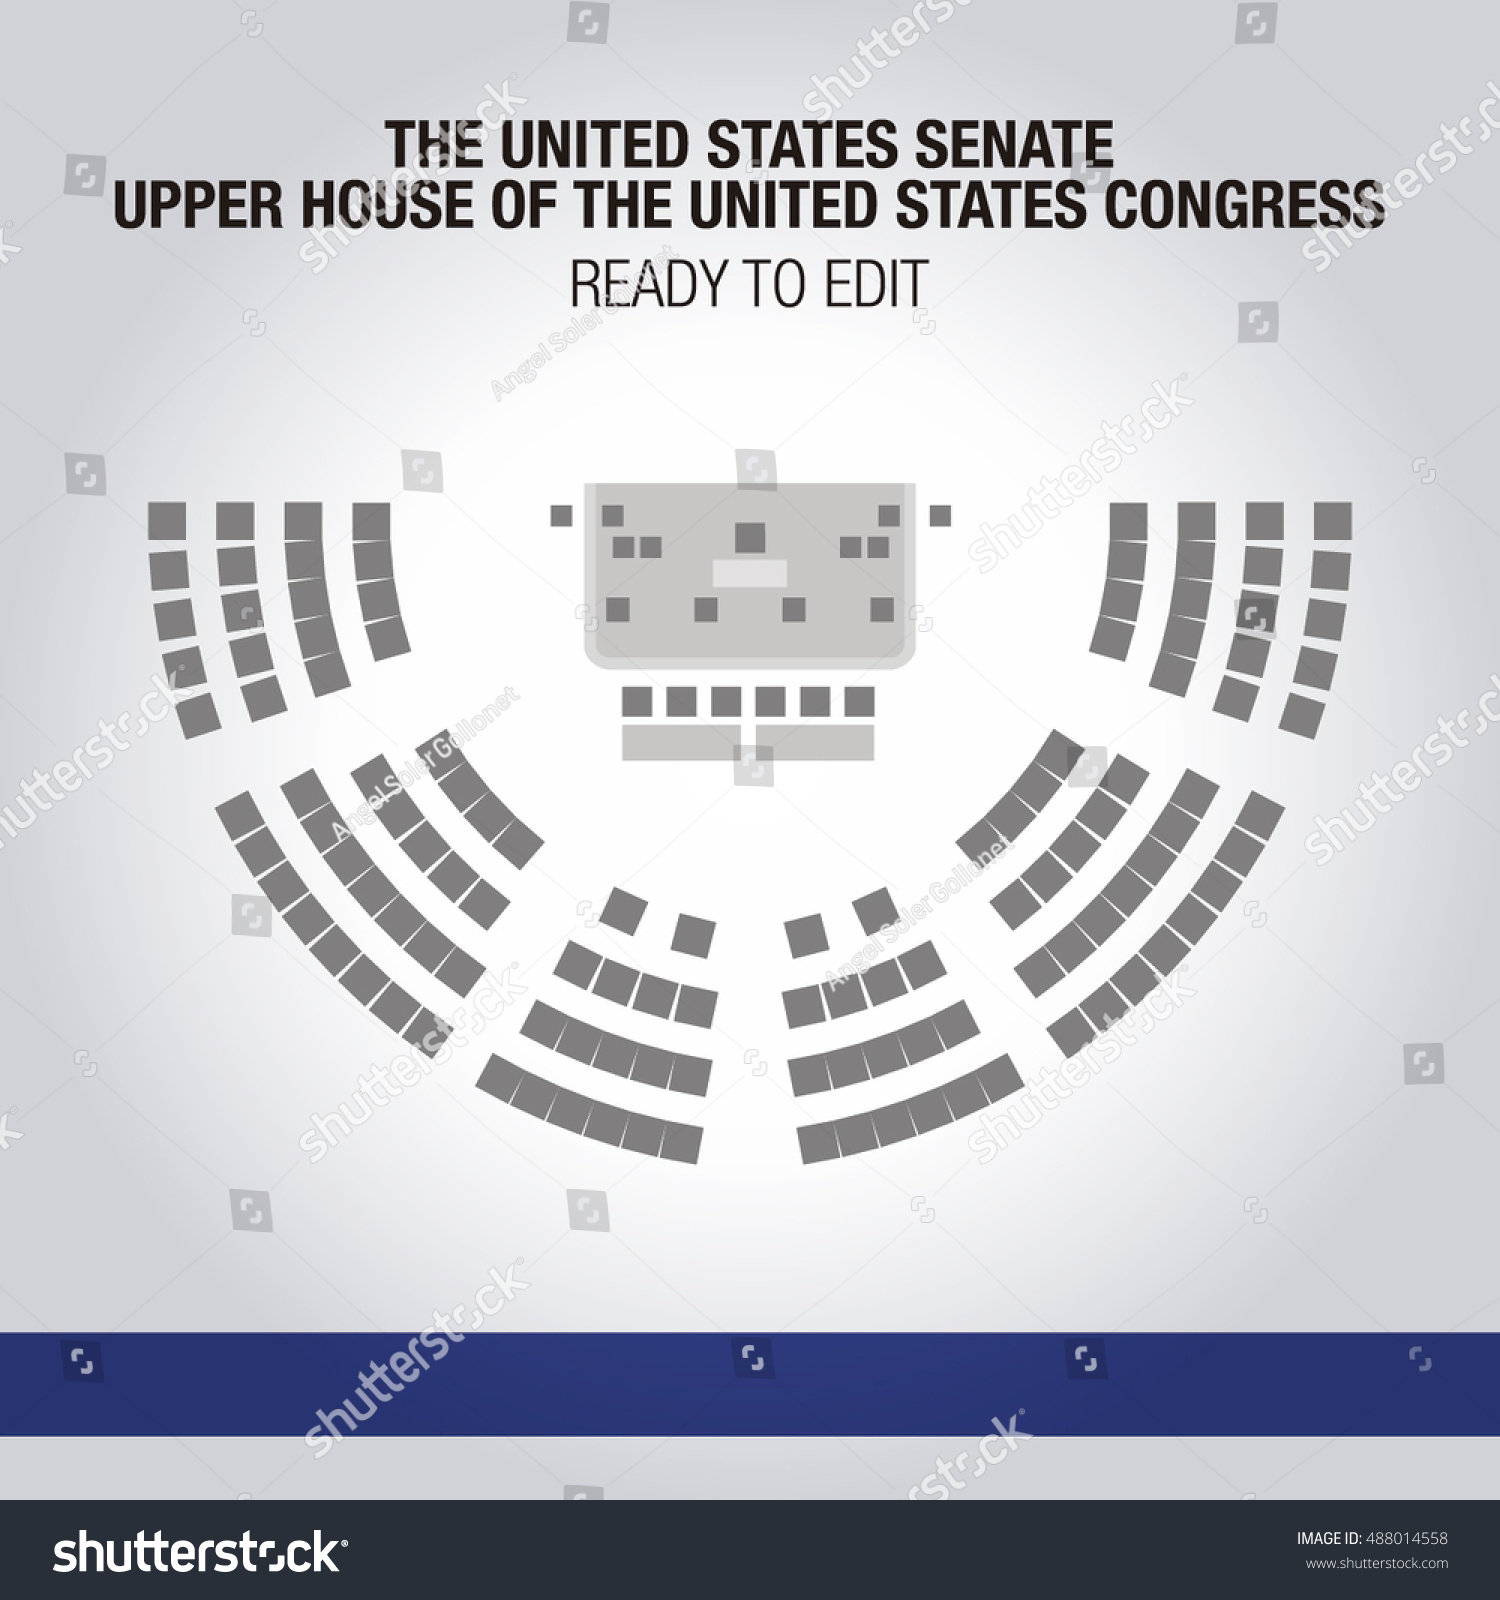 20 images us house of representatives chamber seating plan